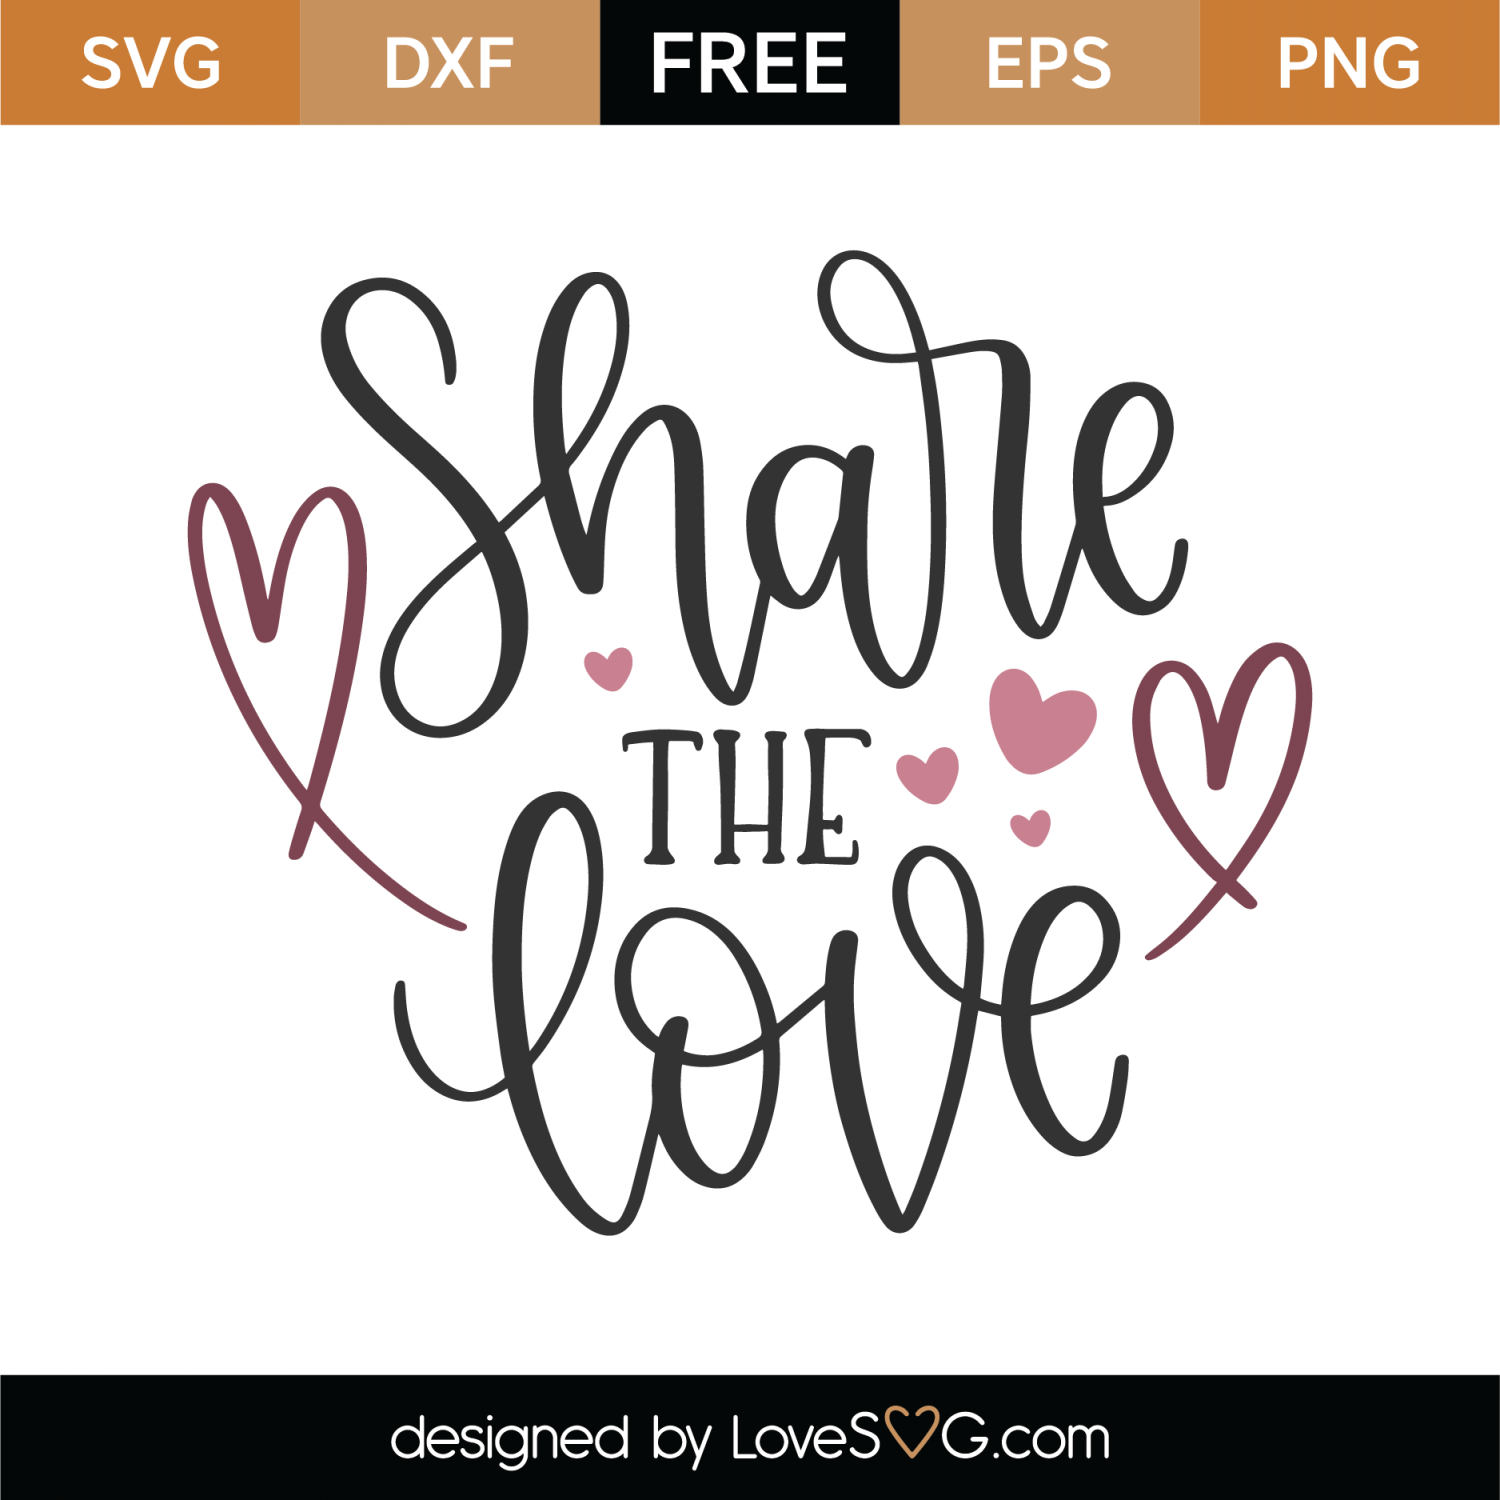 Download Free Share The Love SVG Cut File | Lovesvg.com